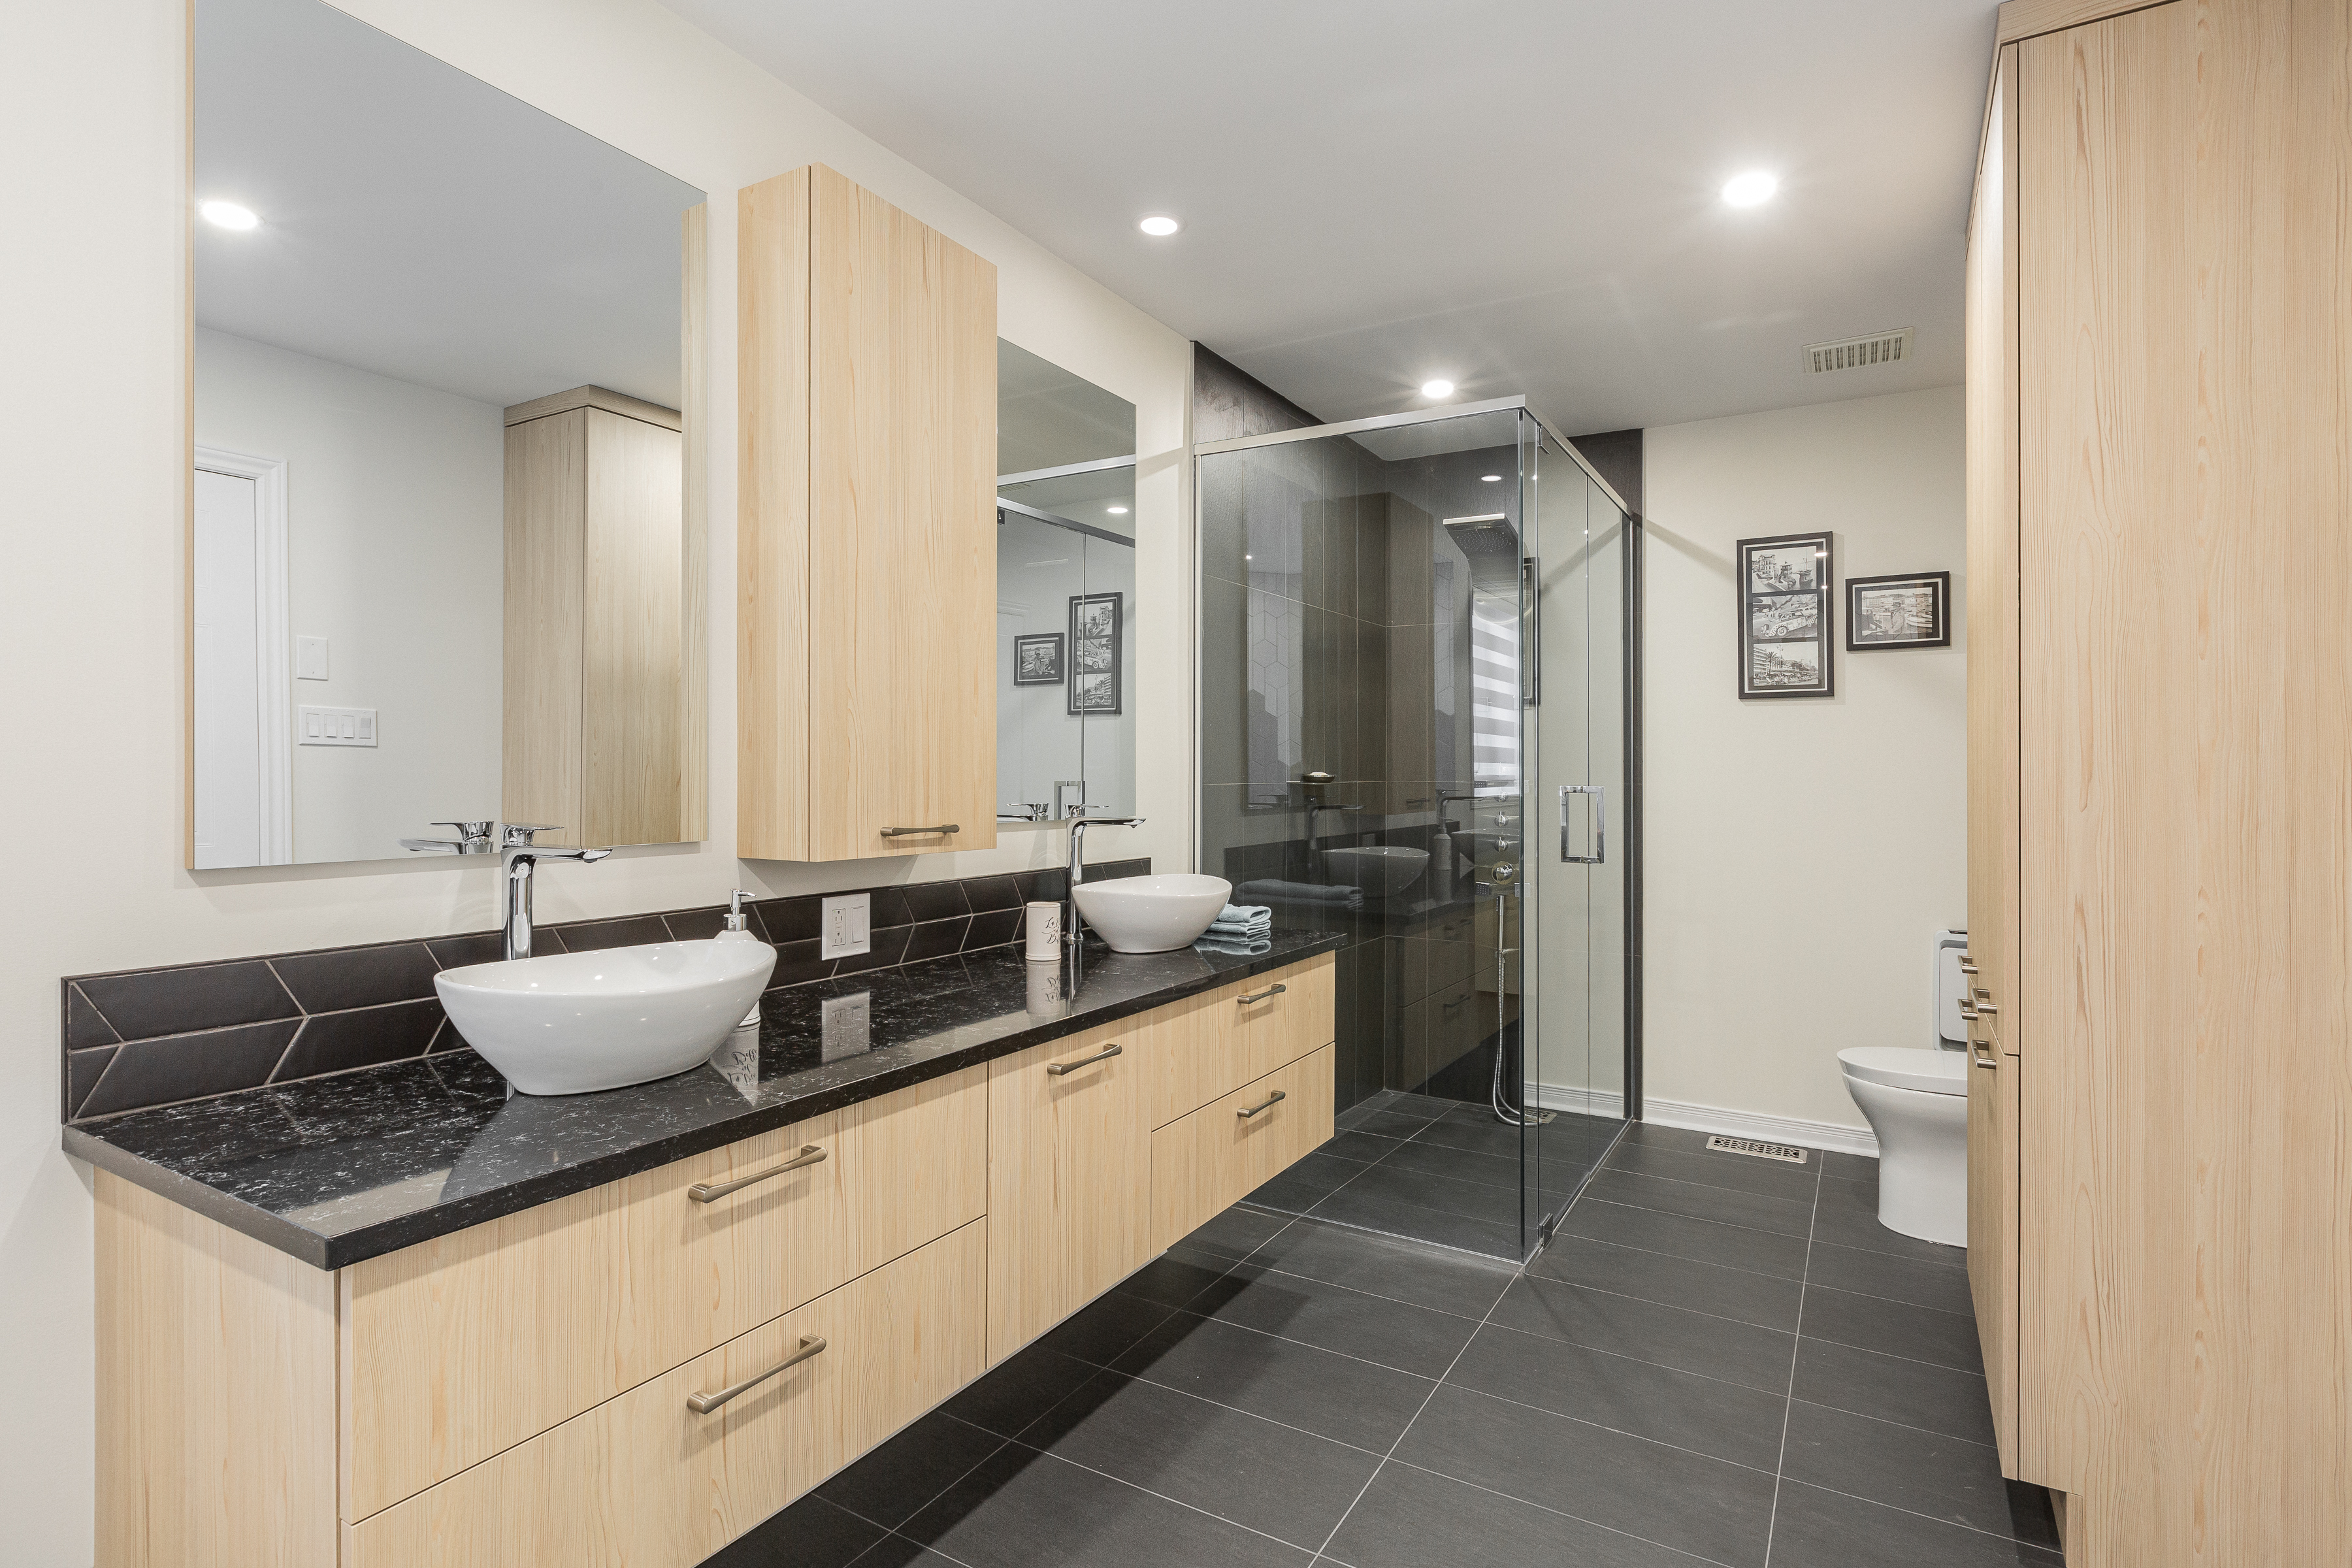 double sink with black counter, wooden cabinets and a glass shower